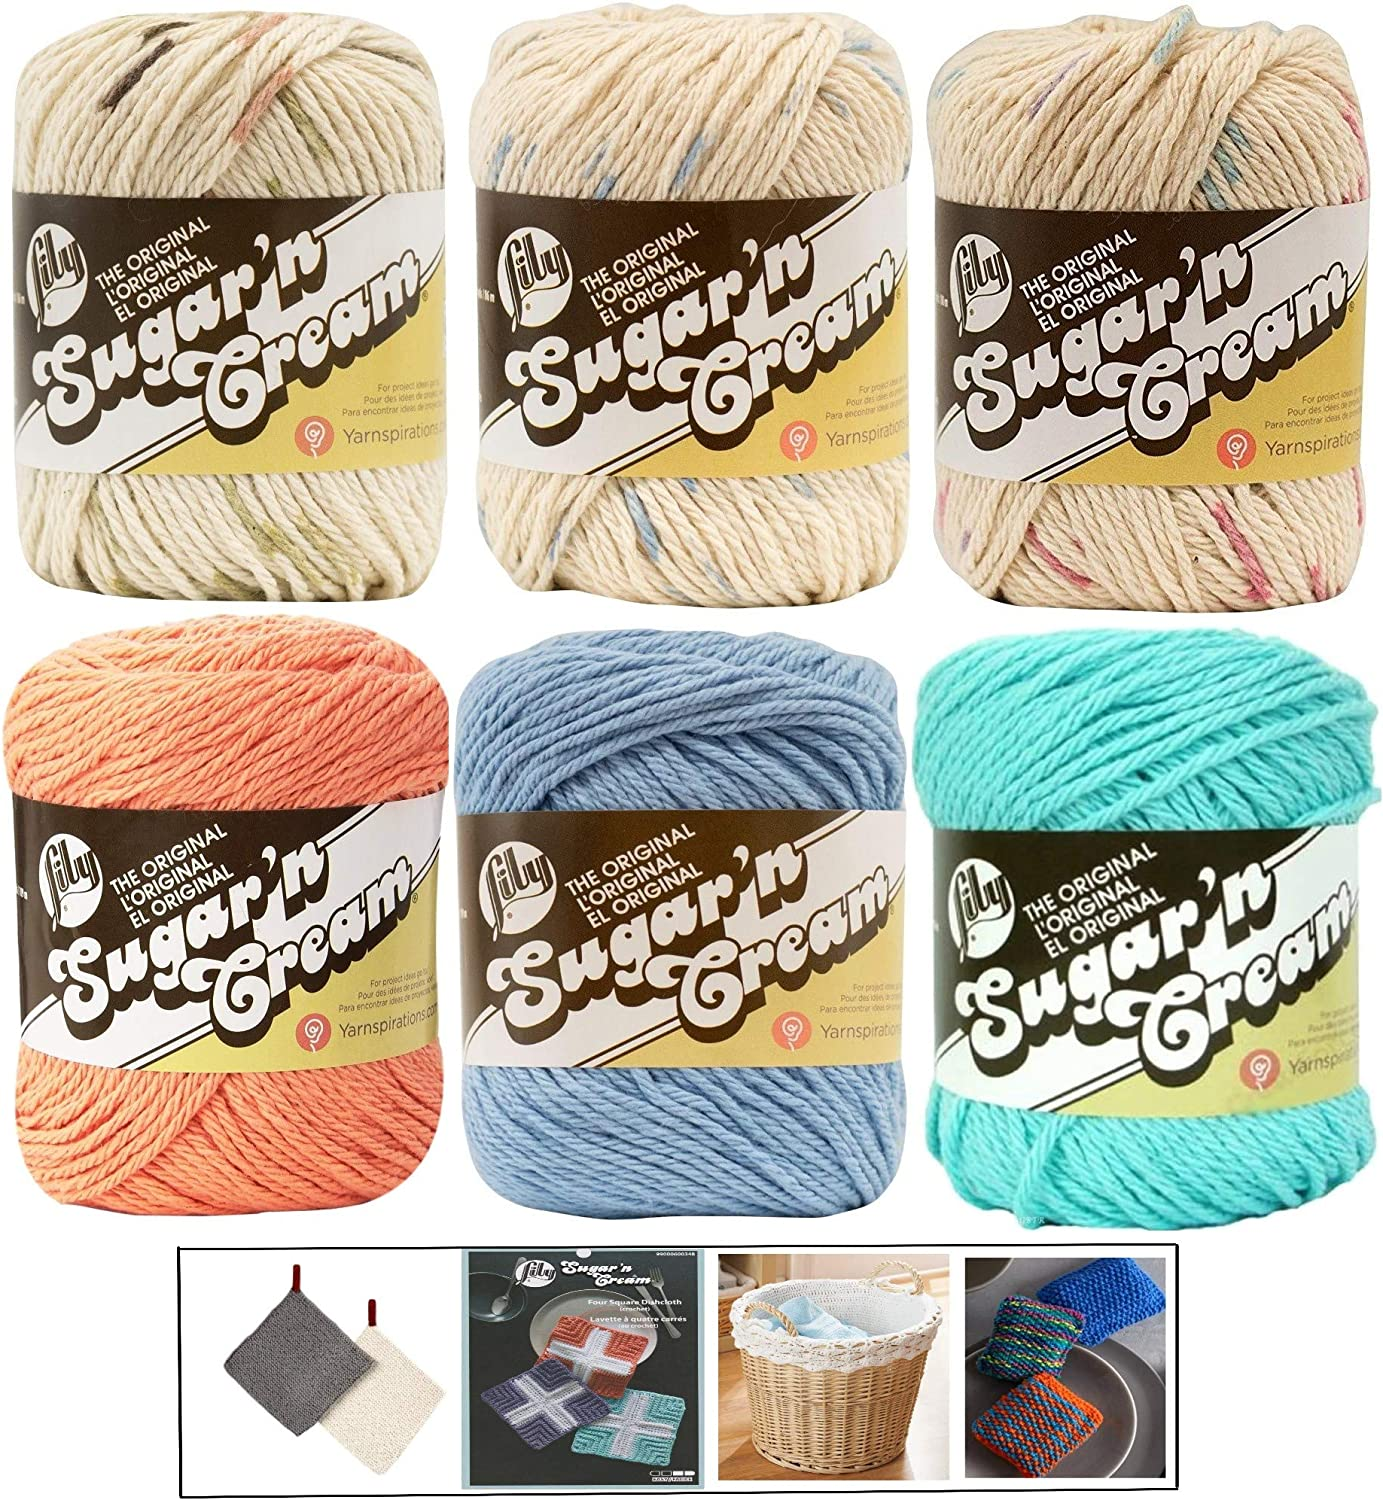 Asst 35 Medium Number 4 Worsted Bundle with 4 Patterns 6-Pack Spinrite Variety Assortment Lily Sugarn Cream Yarn 100 Percent Cotton Solids and Ombres